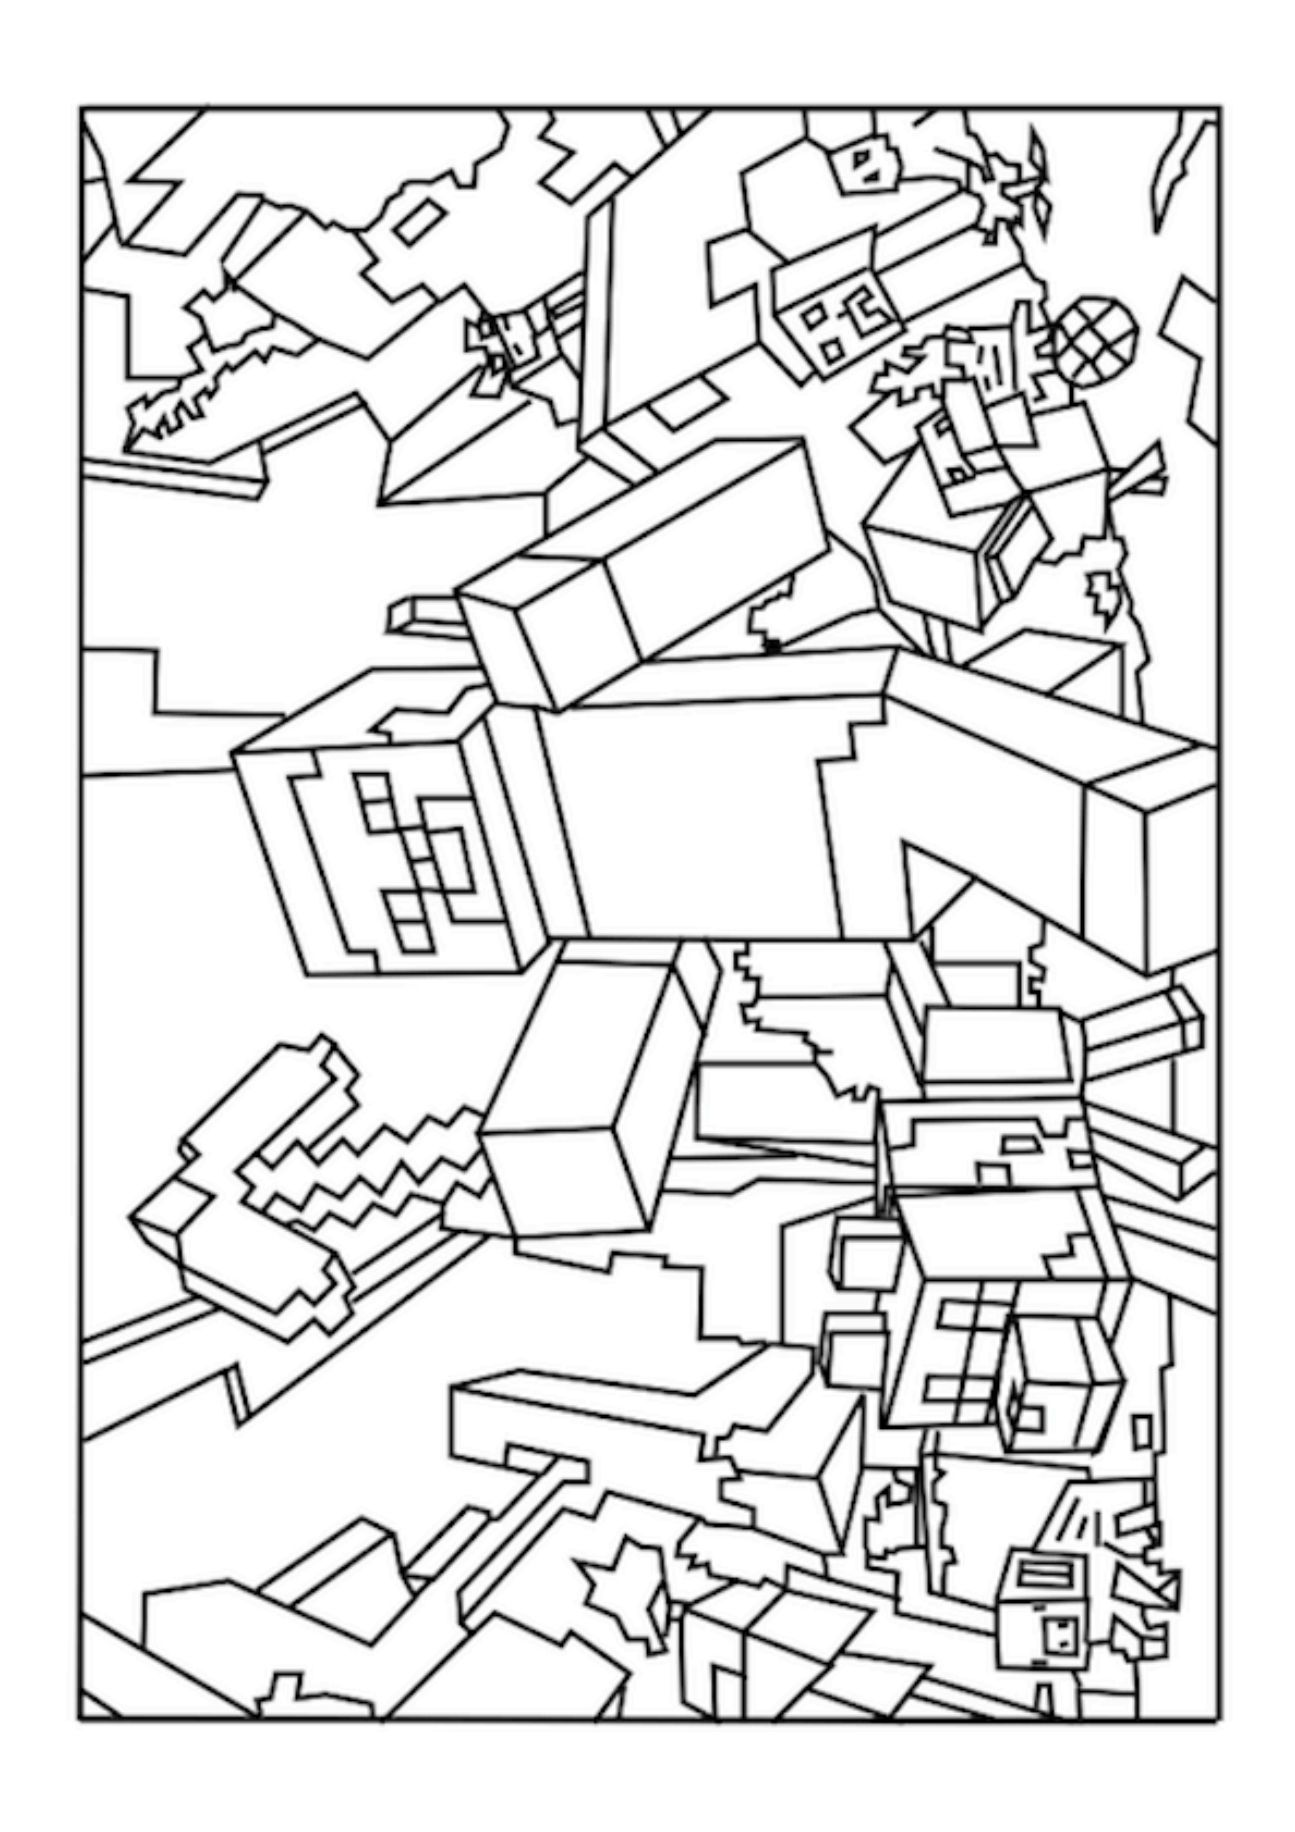 Fan image regarding free printable minecraft coloring pages